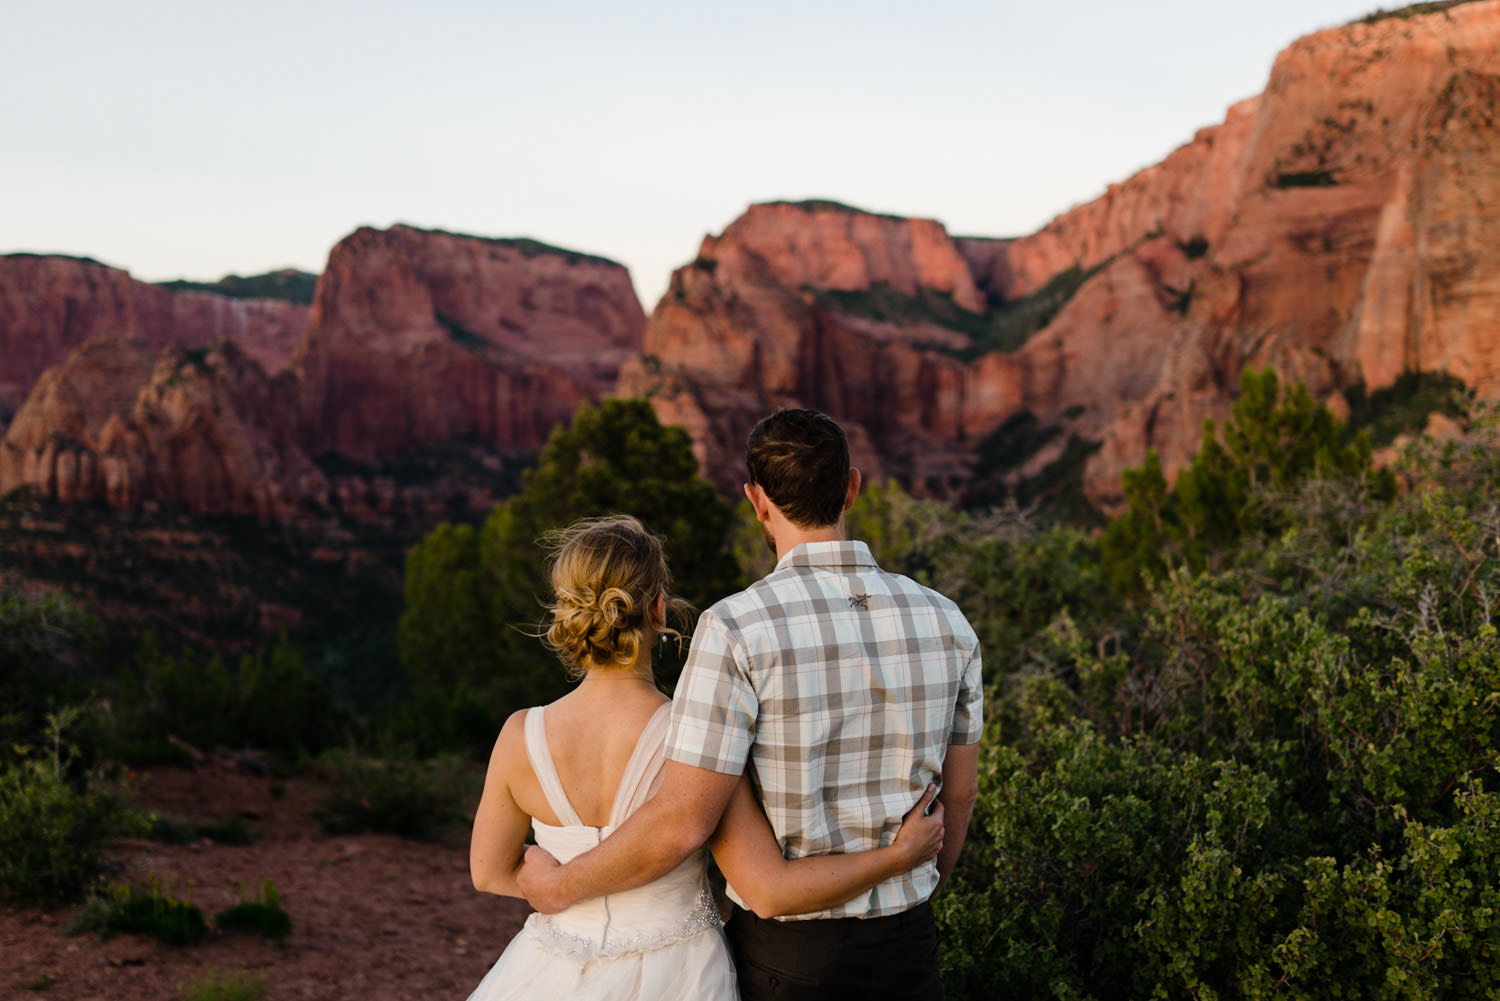 Kolob Canyons Wedding in Zion National Park newlyweds embracing photo